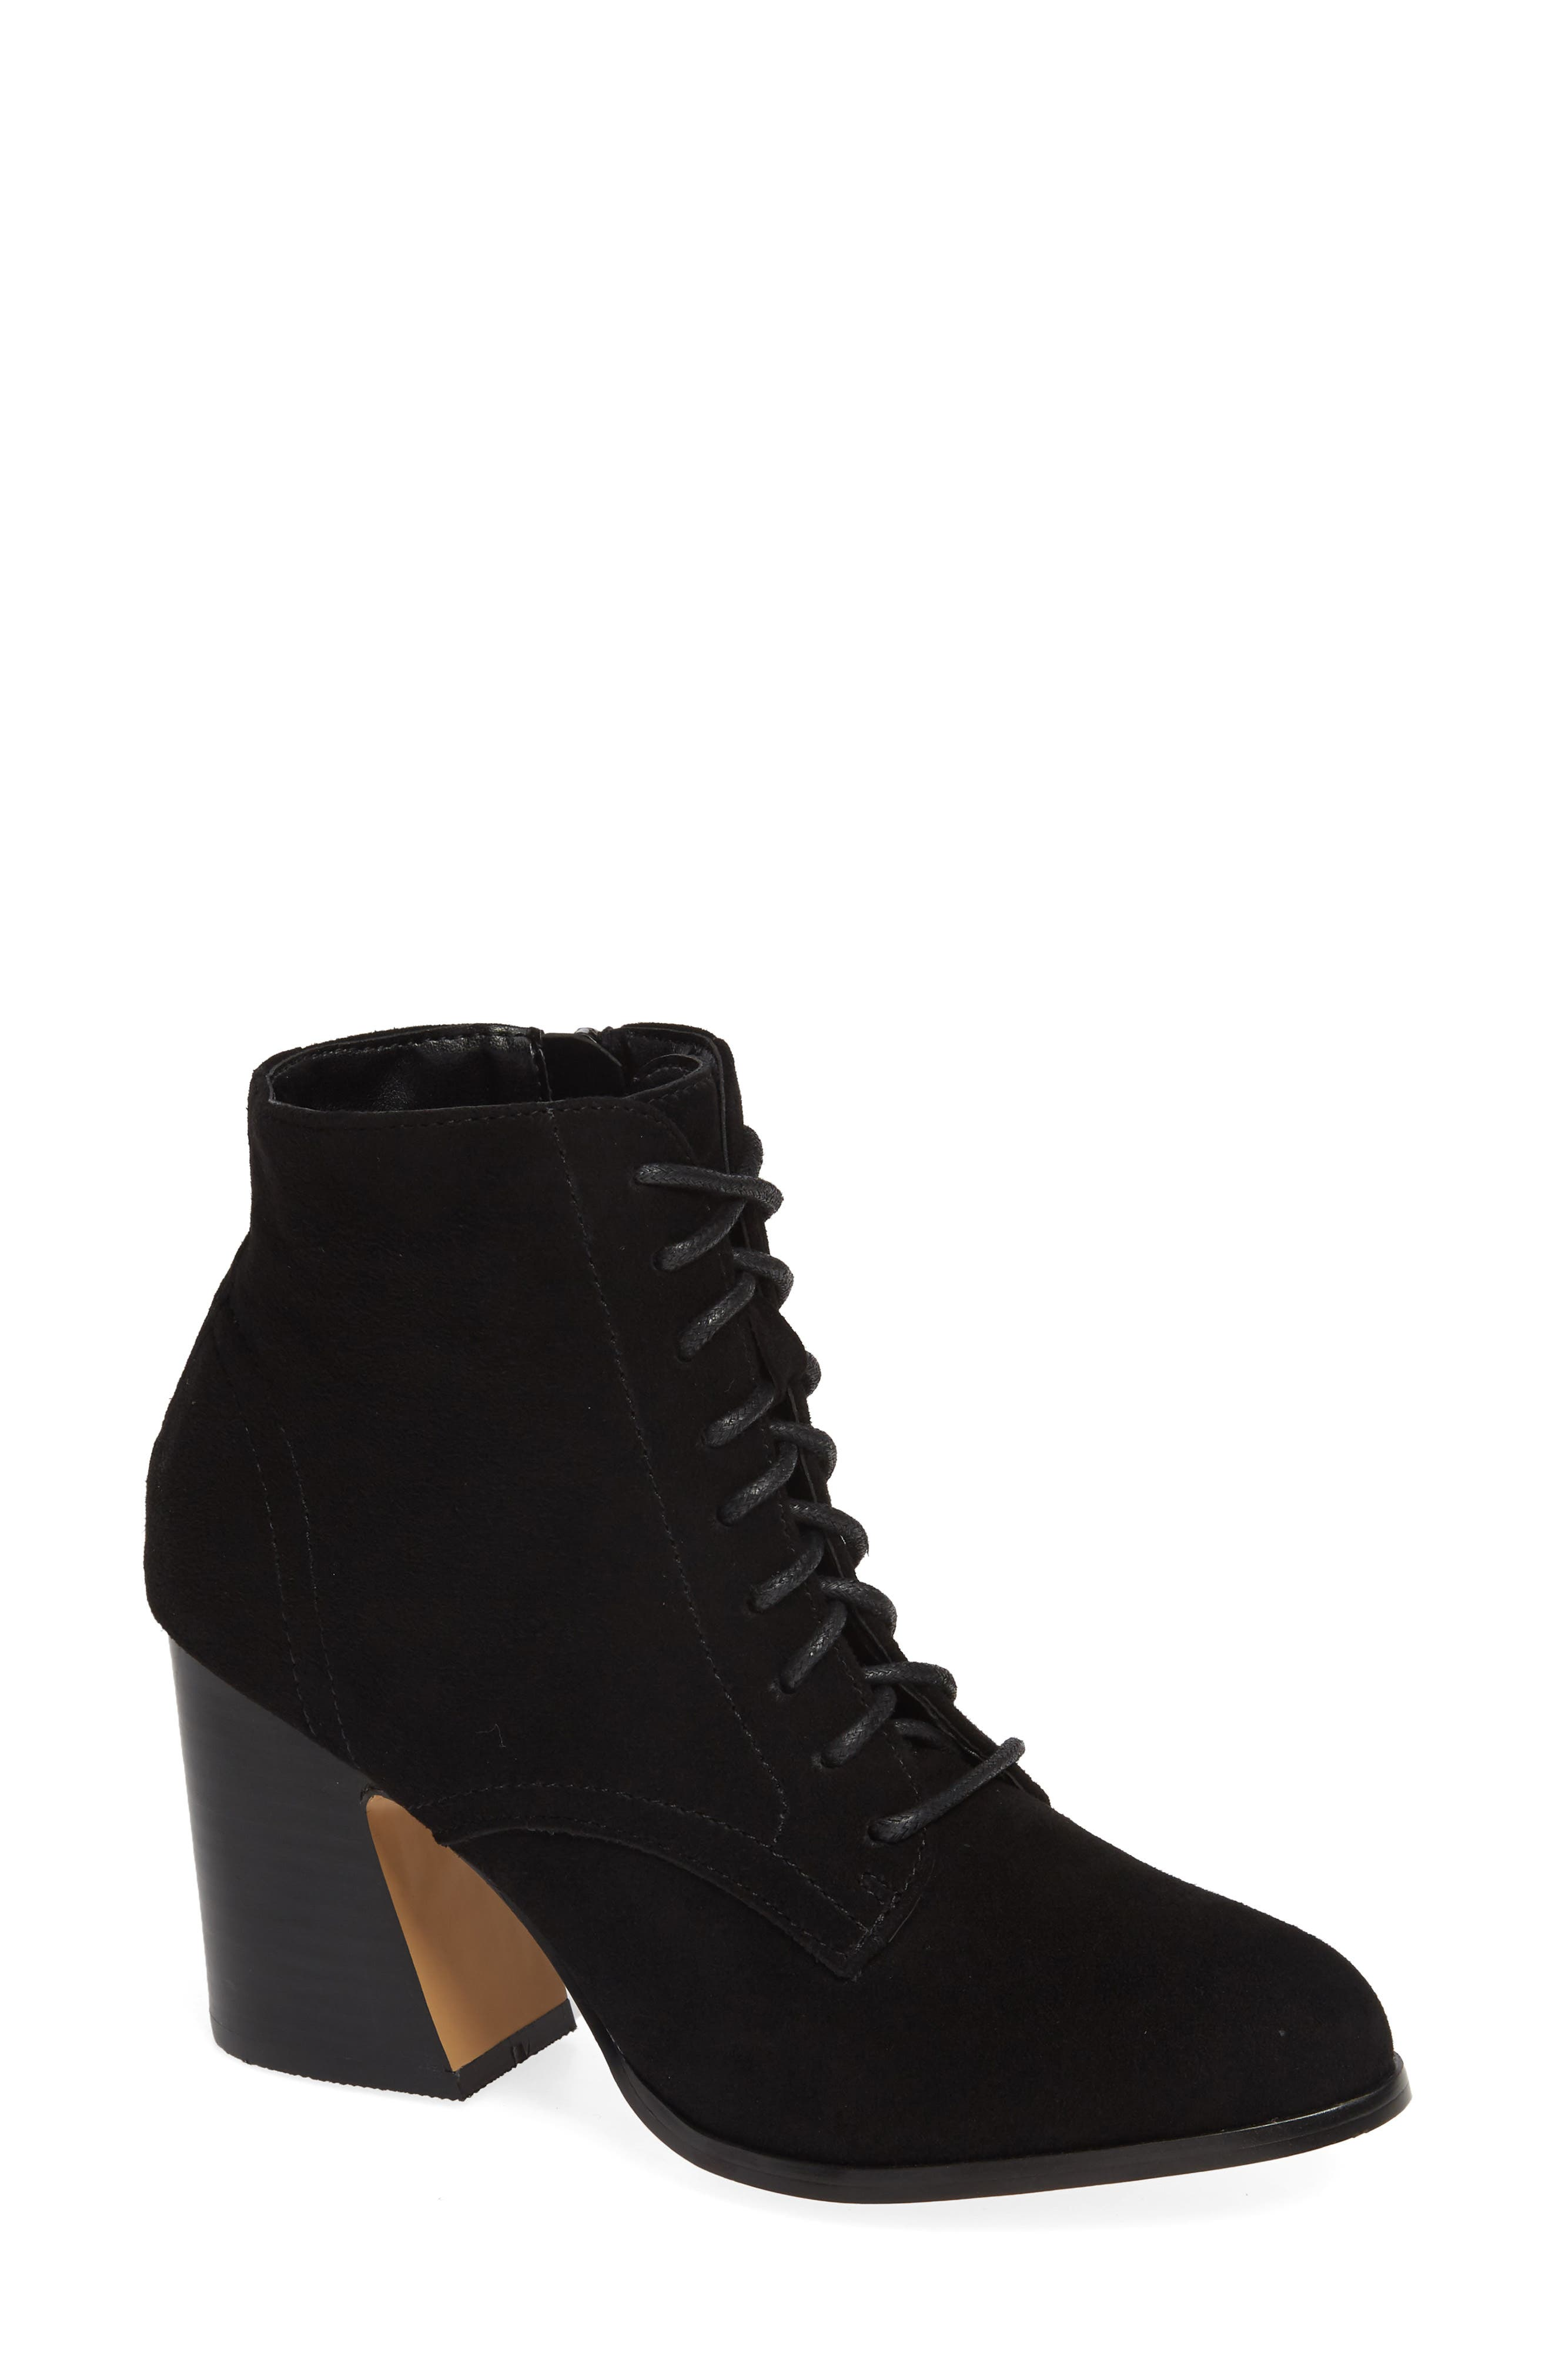 KENSIE Smith Lace-Up Bootie in Black Suede